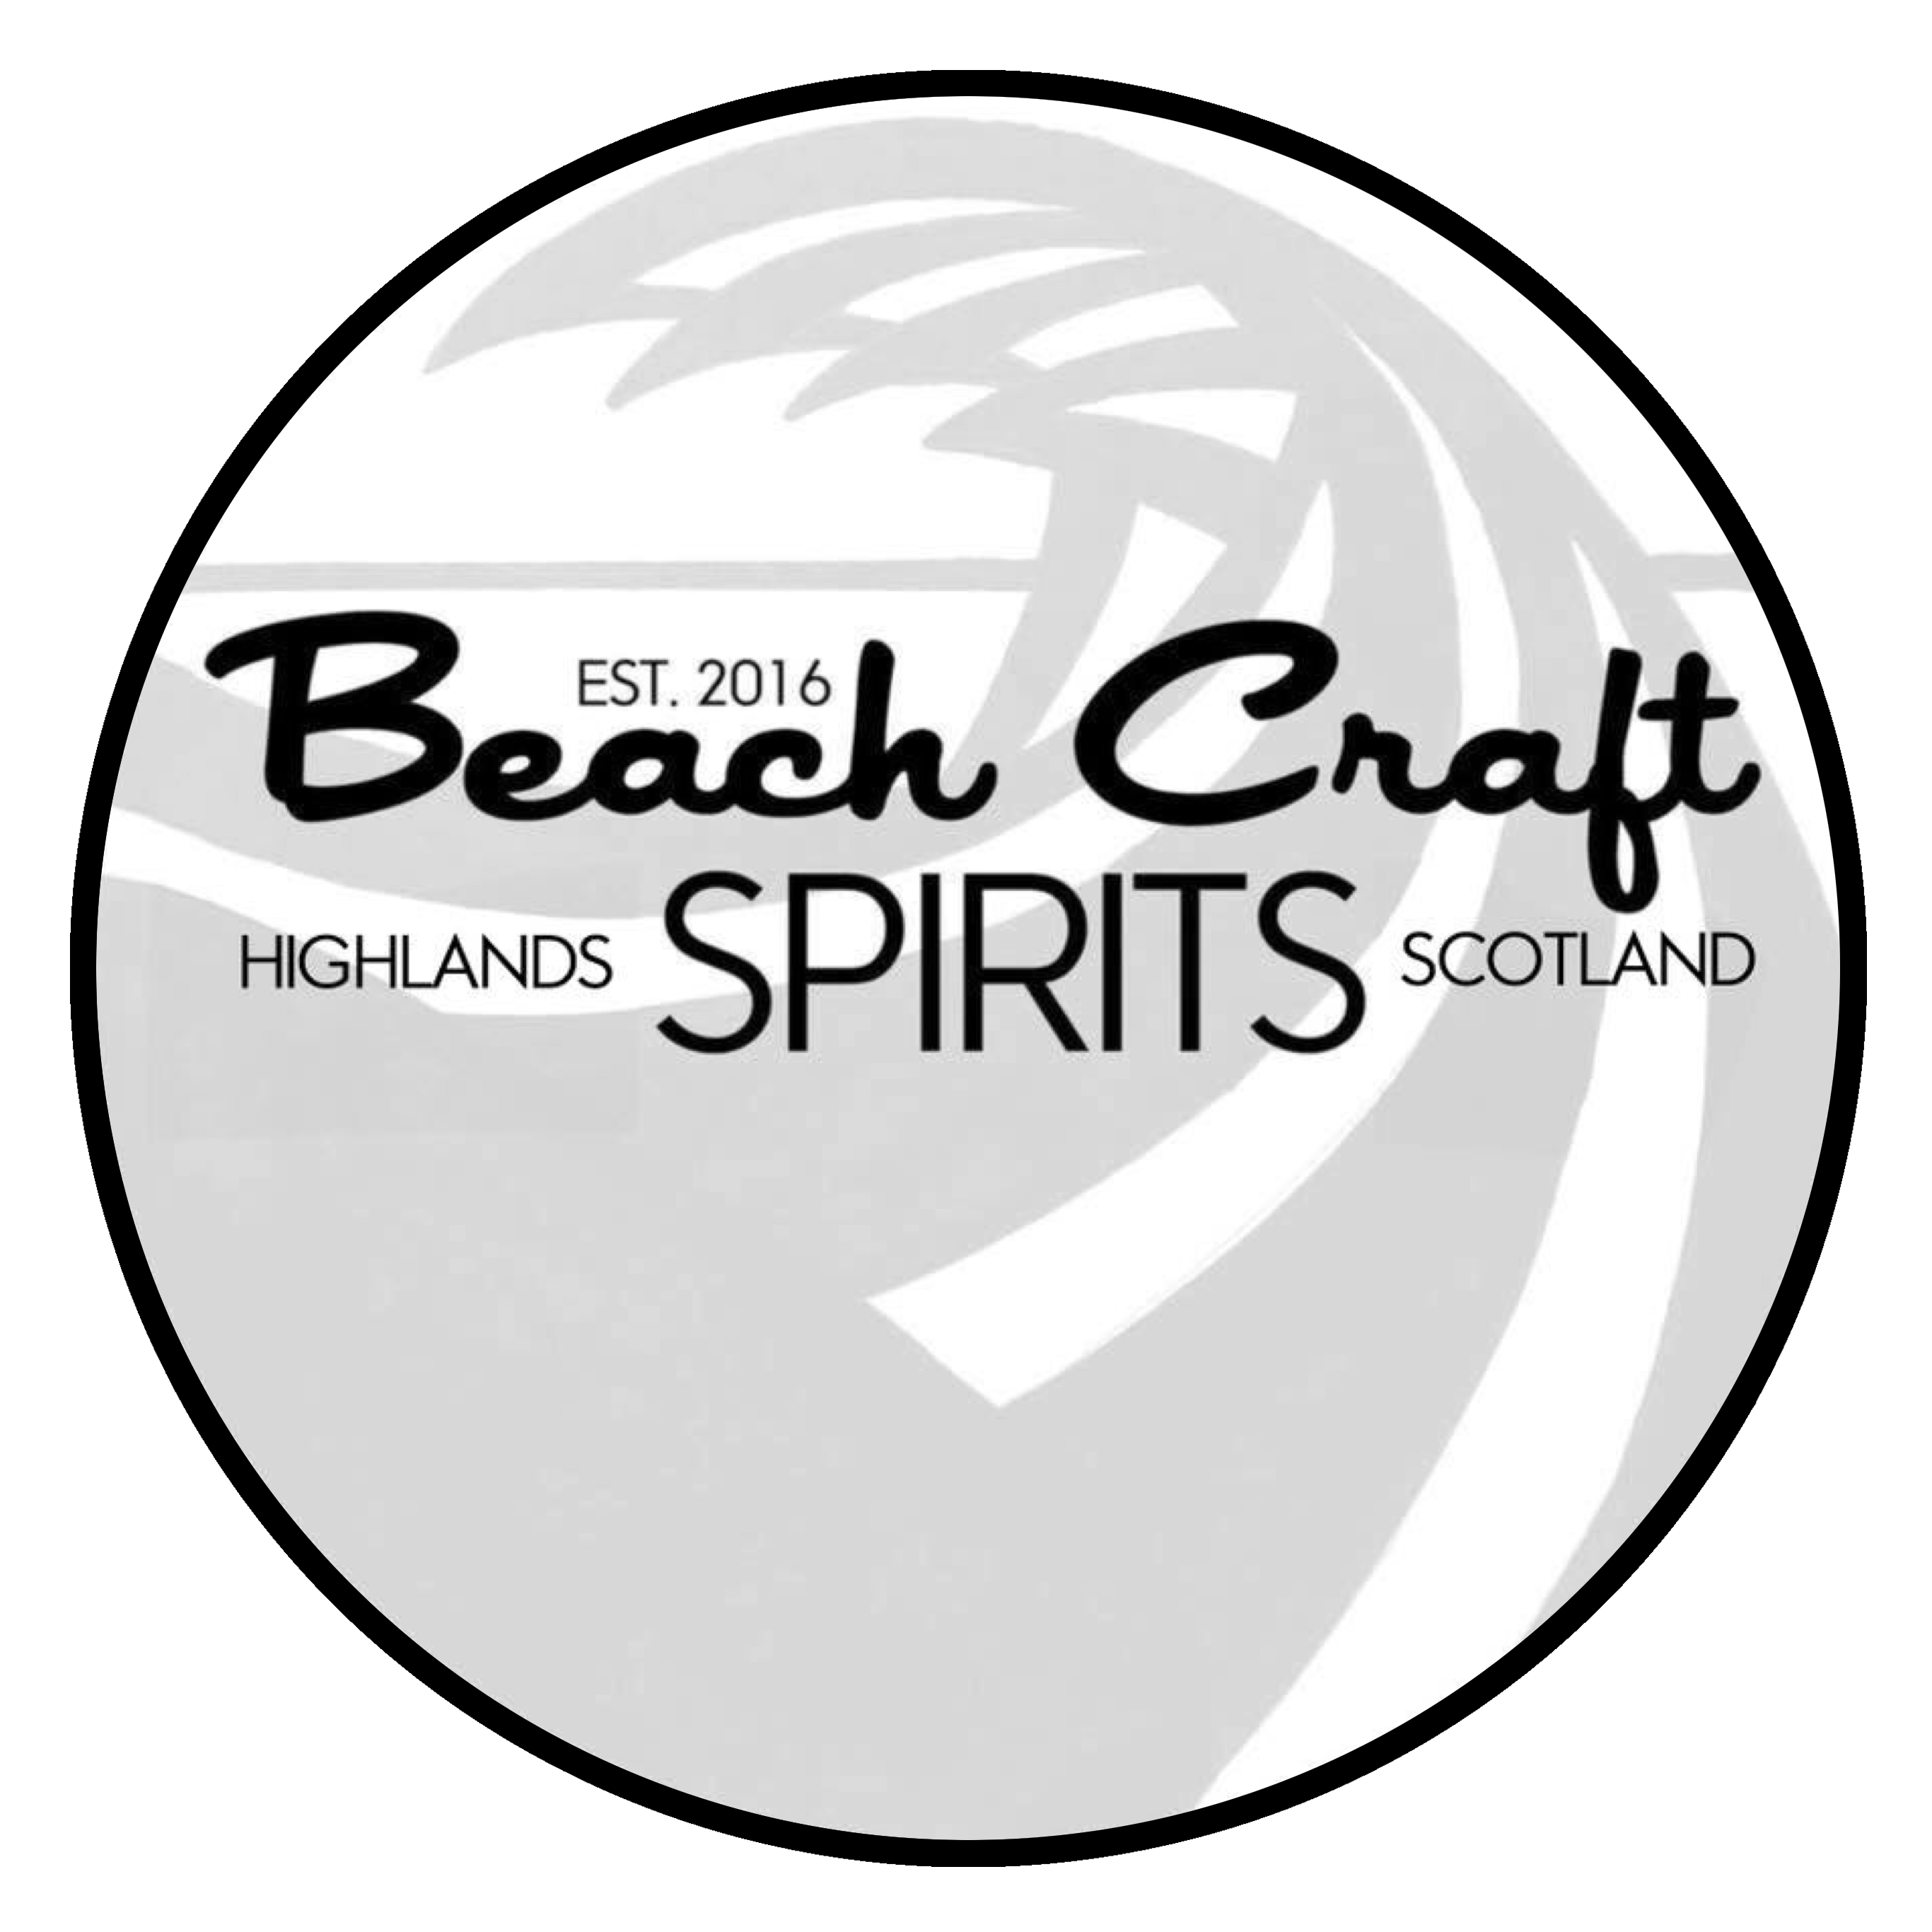 Beach Craft Spirits Official Merchandise